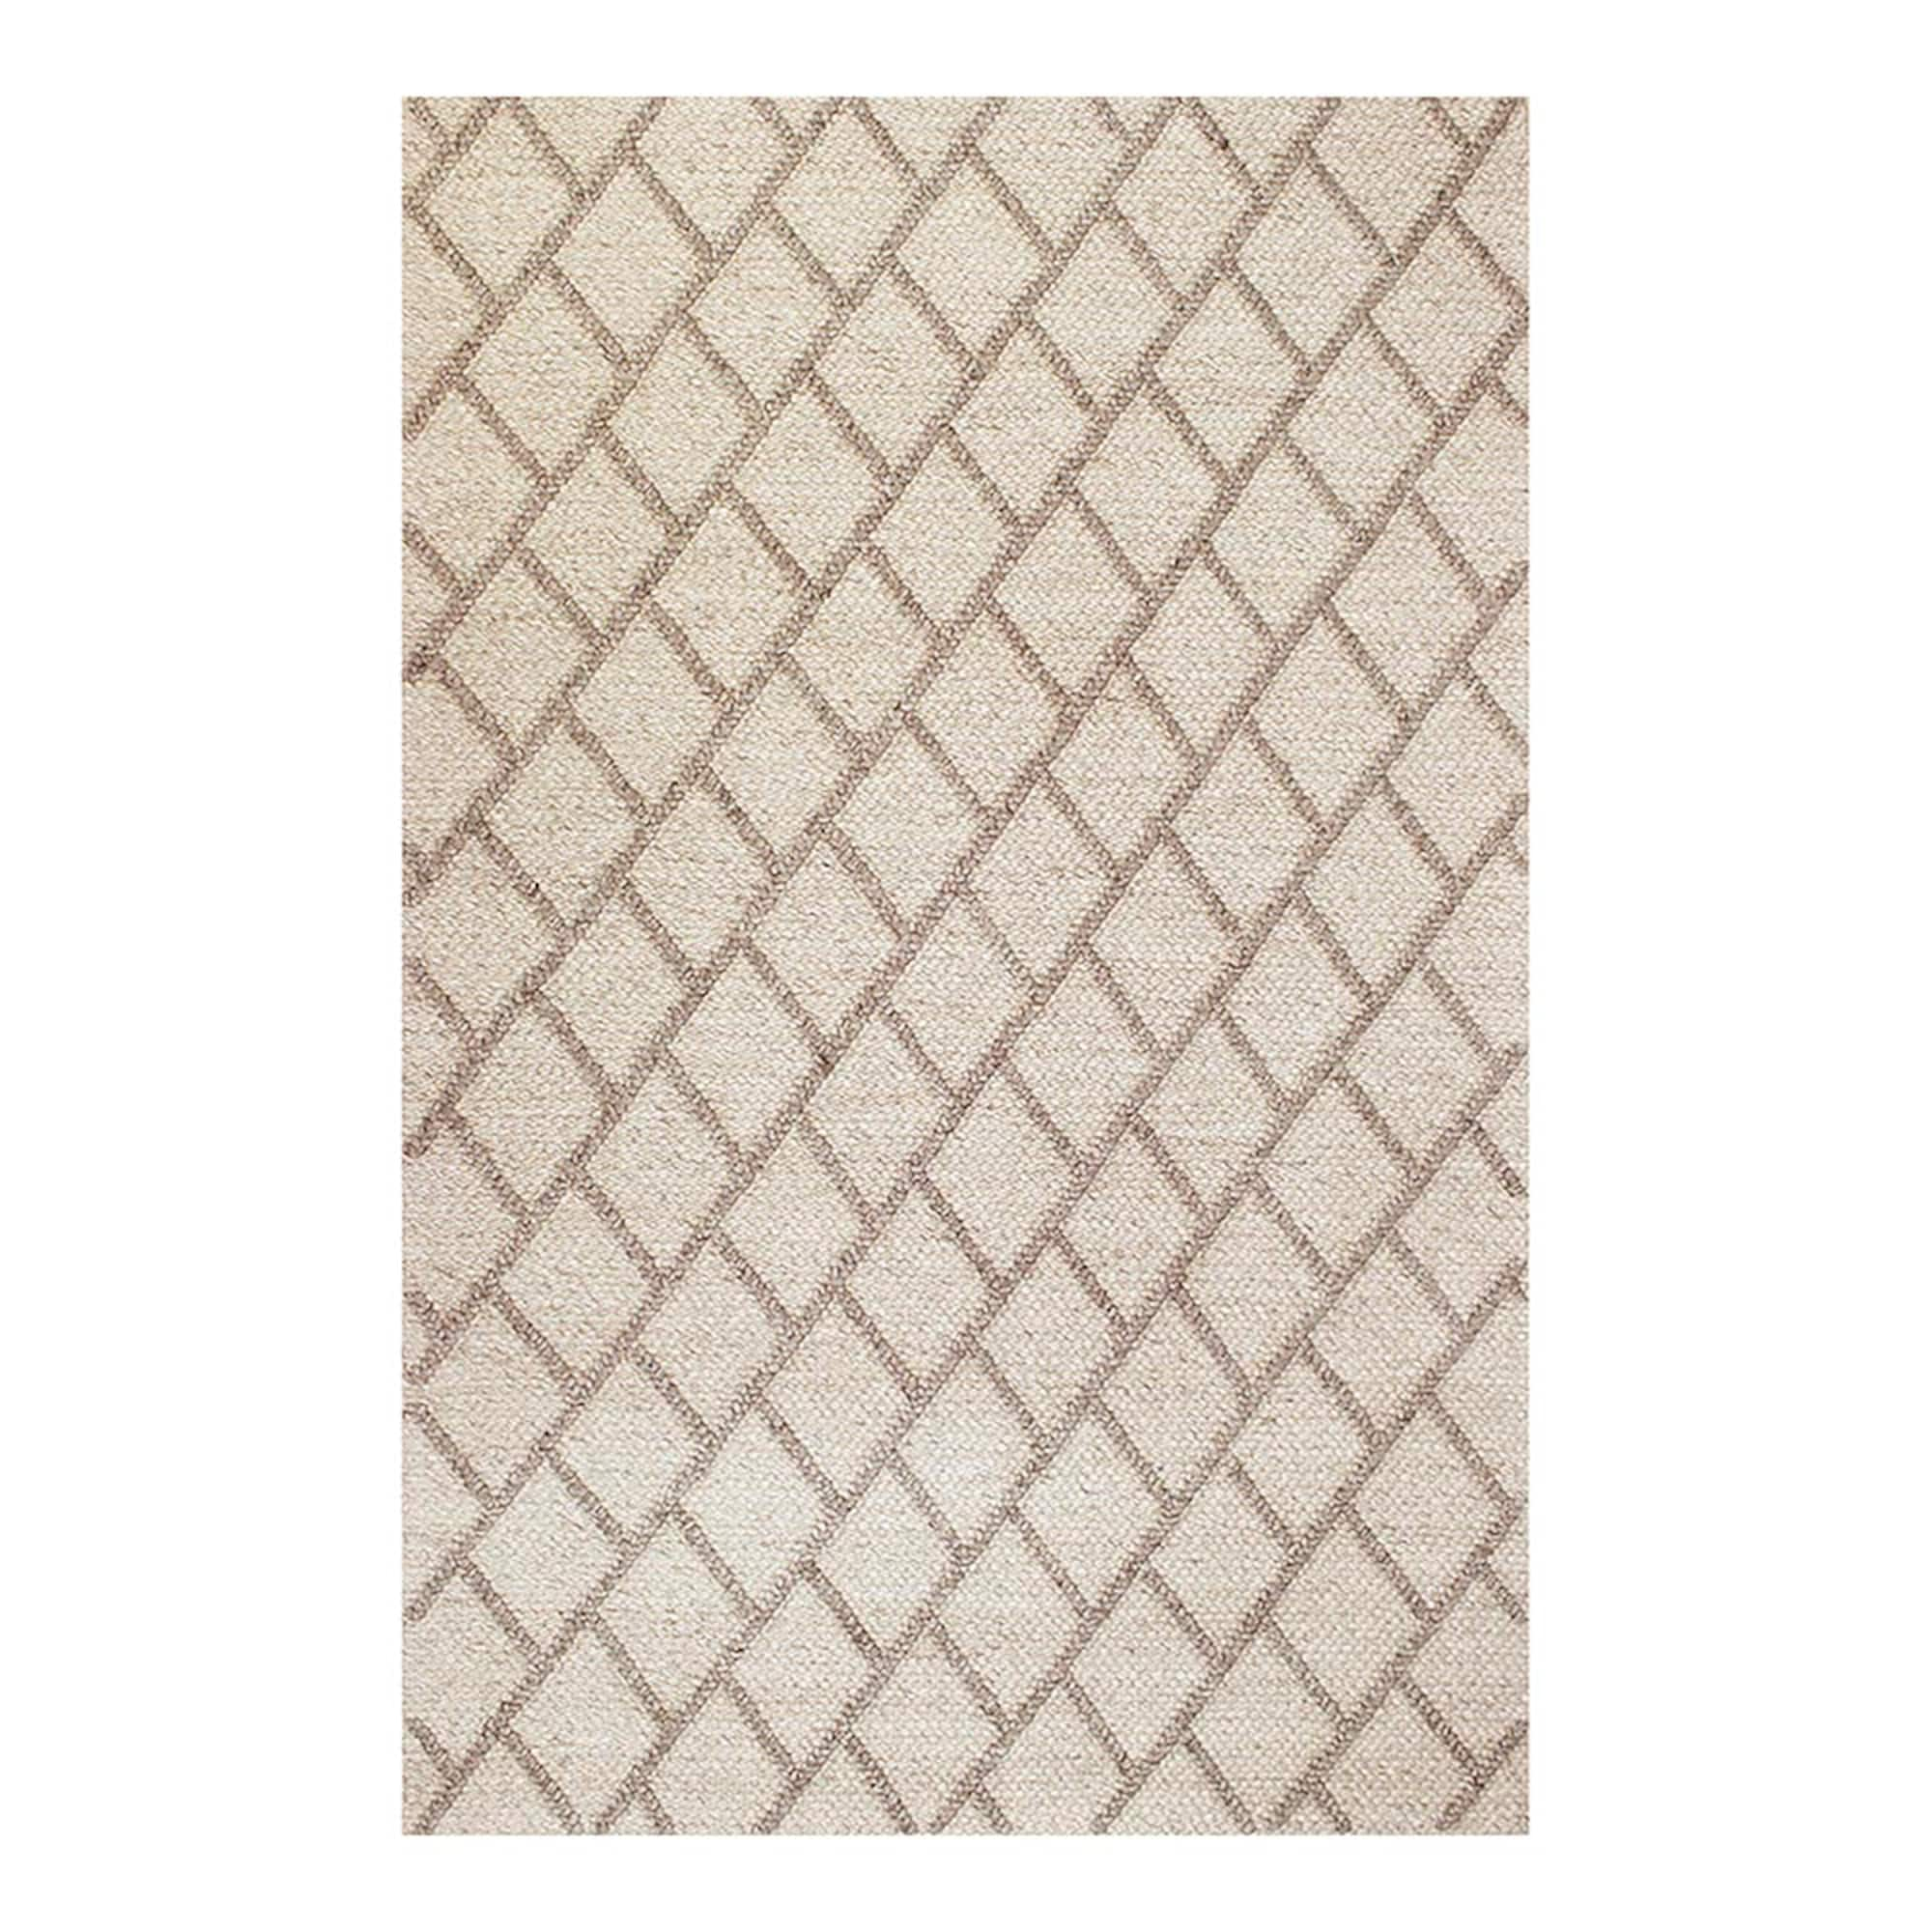 Florentine Ivory Area Rug - Hand-Woven